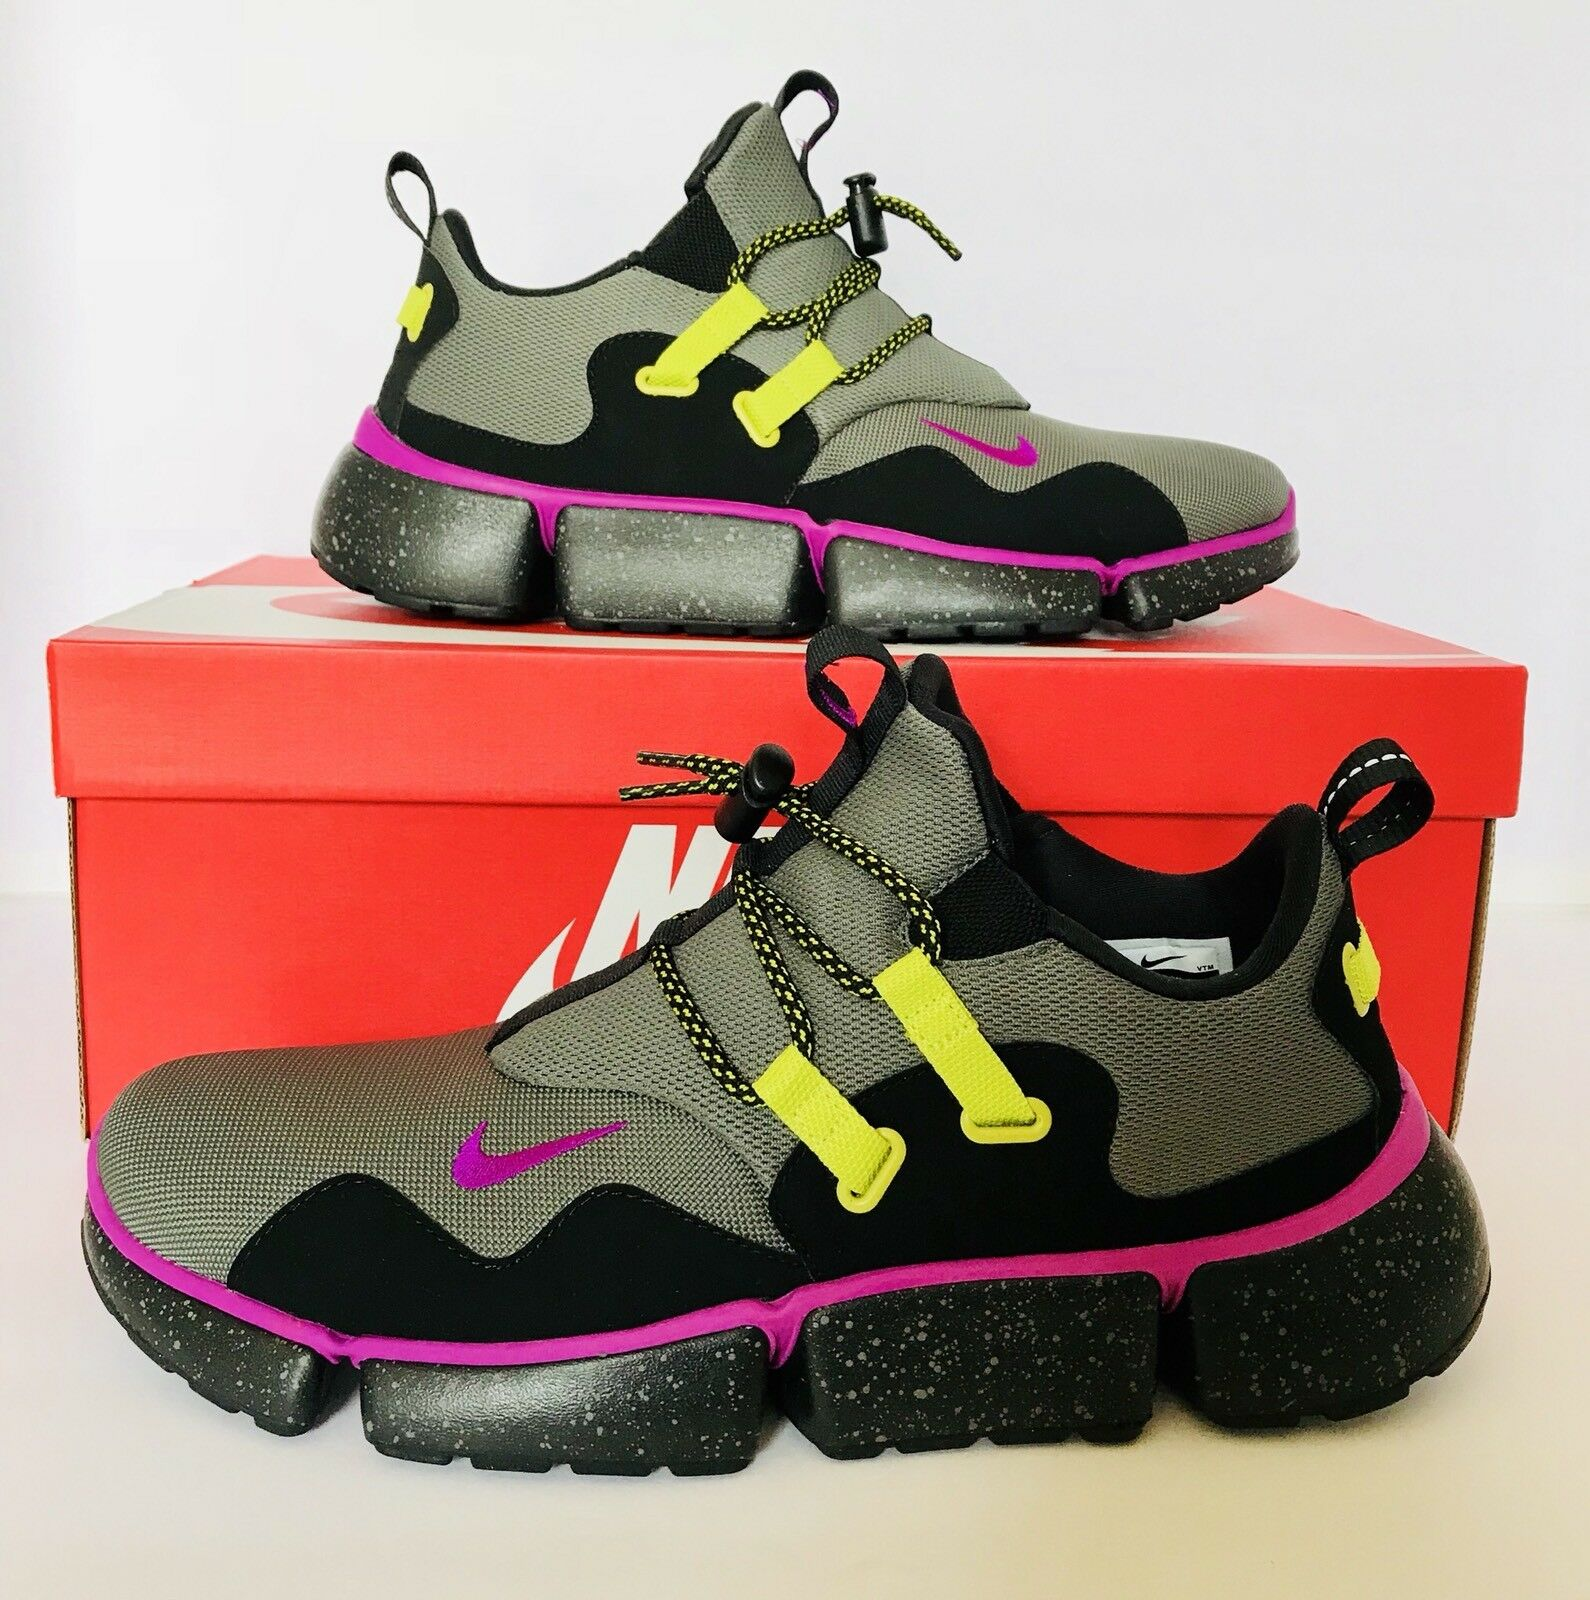 Nike Rock Mens Pocketknife DM River Rock Nike Running Shoes Violet Black Sz 11 AH9709-001 829d76